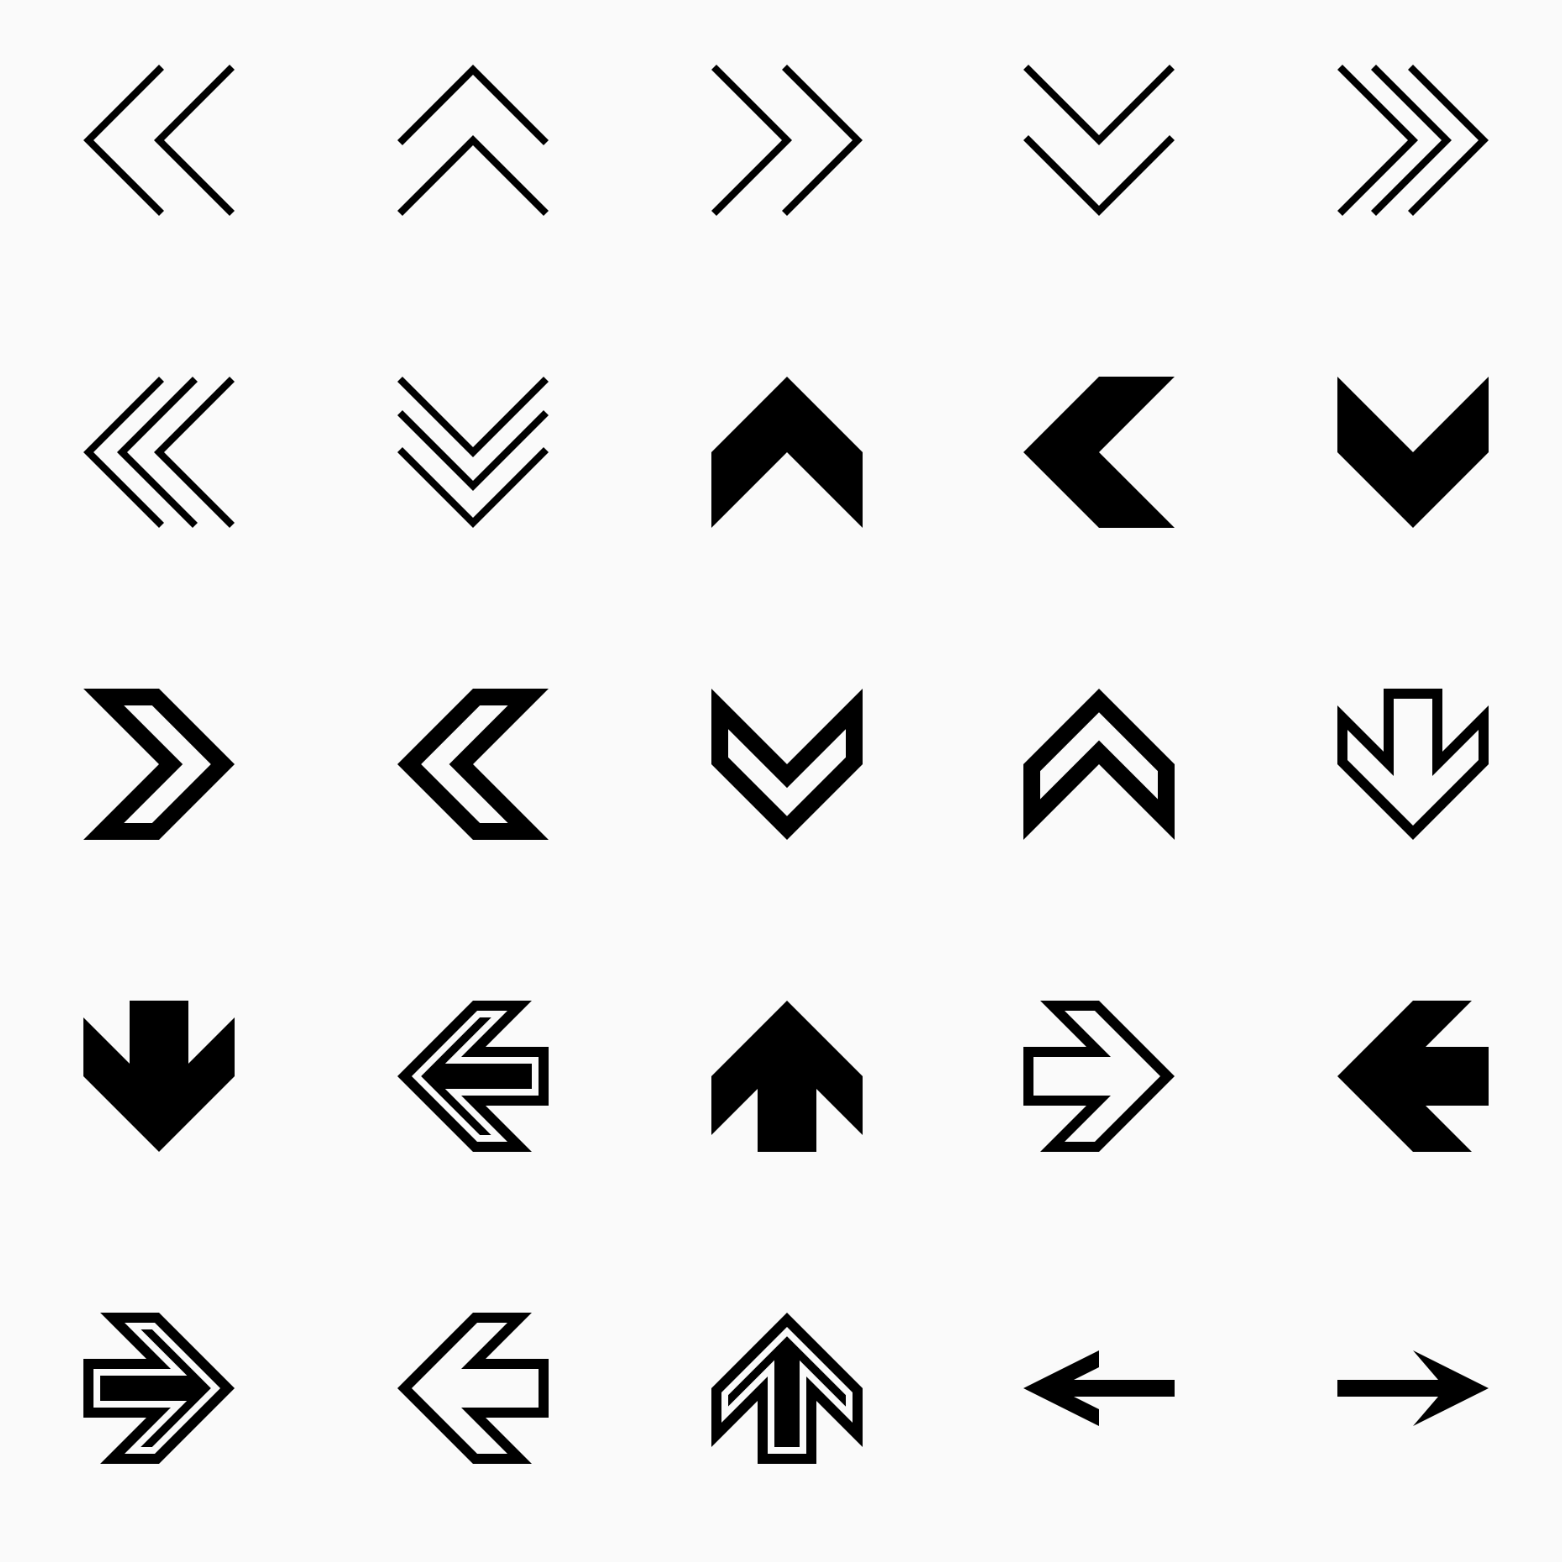 mxmnr_nounproject_arrow_icon_set.png